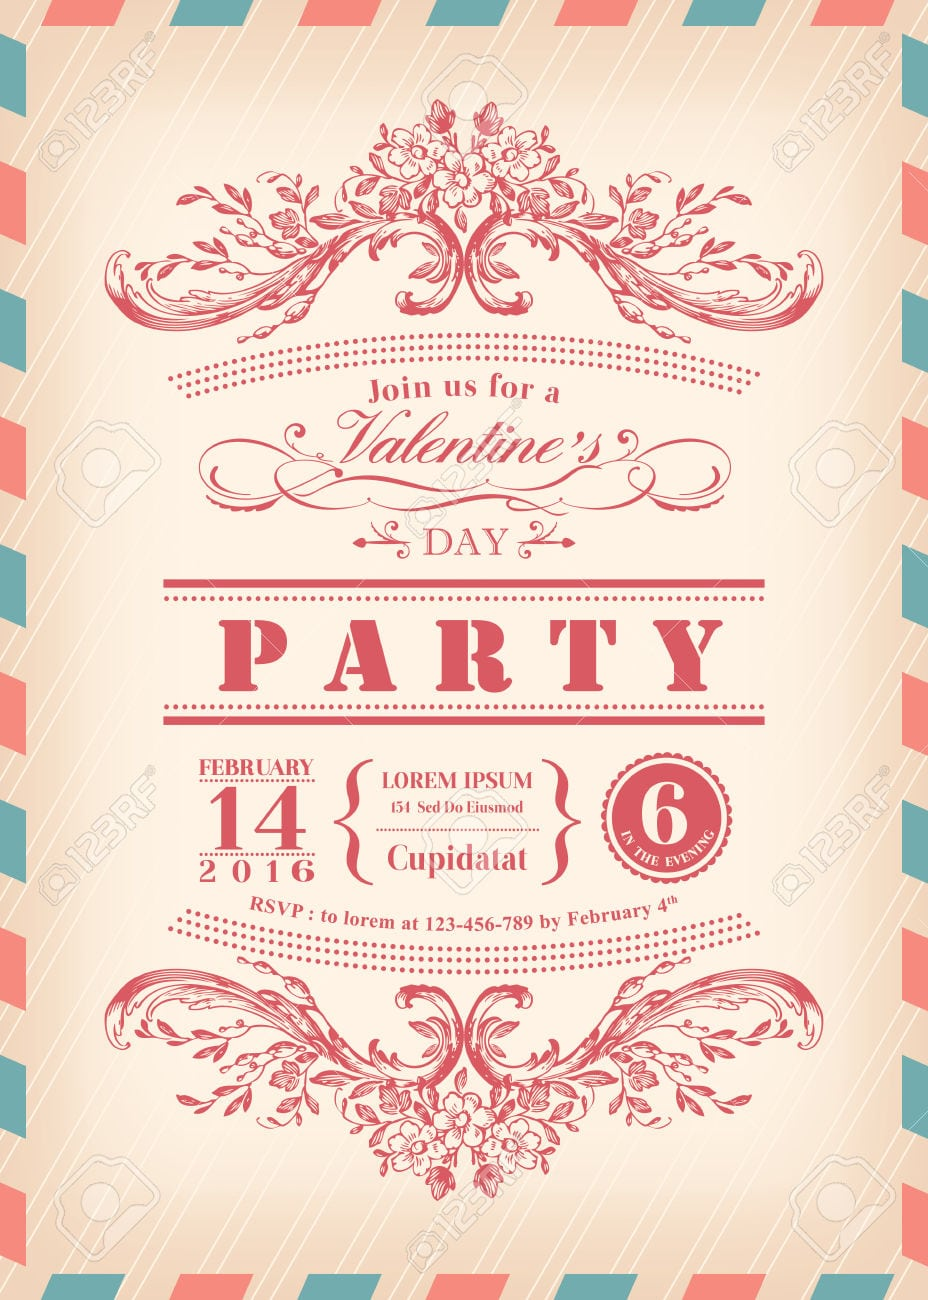 Valentine Day Card Party Invitation With Vintage Frame And Airmail